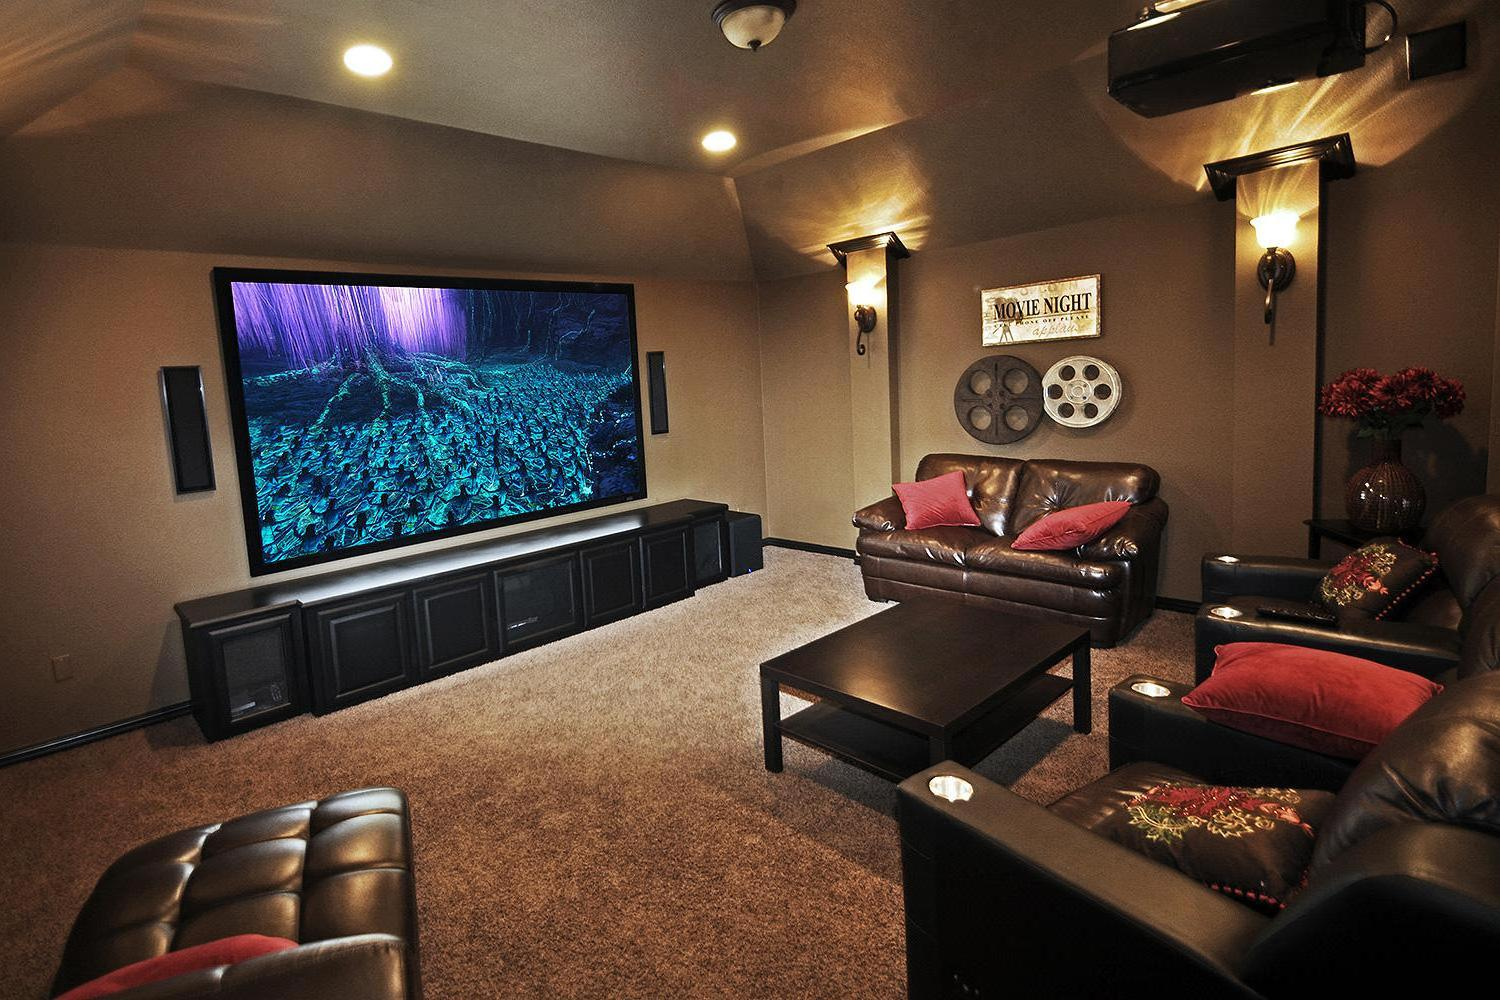 ideas to decorate a living room theater on a budget